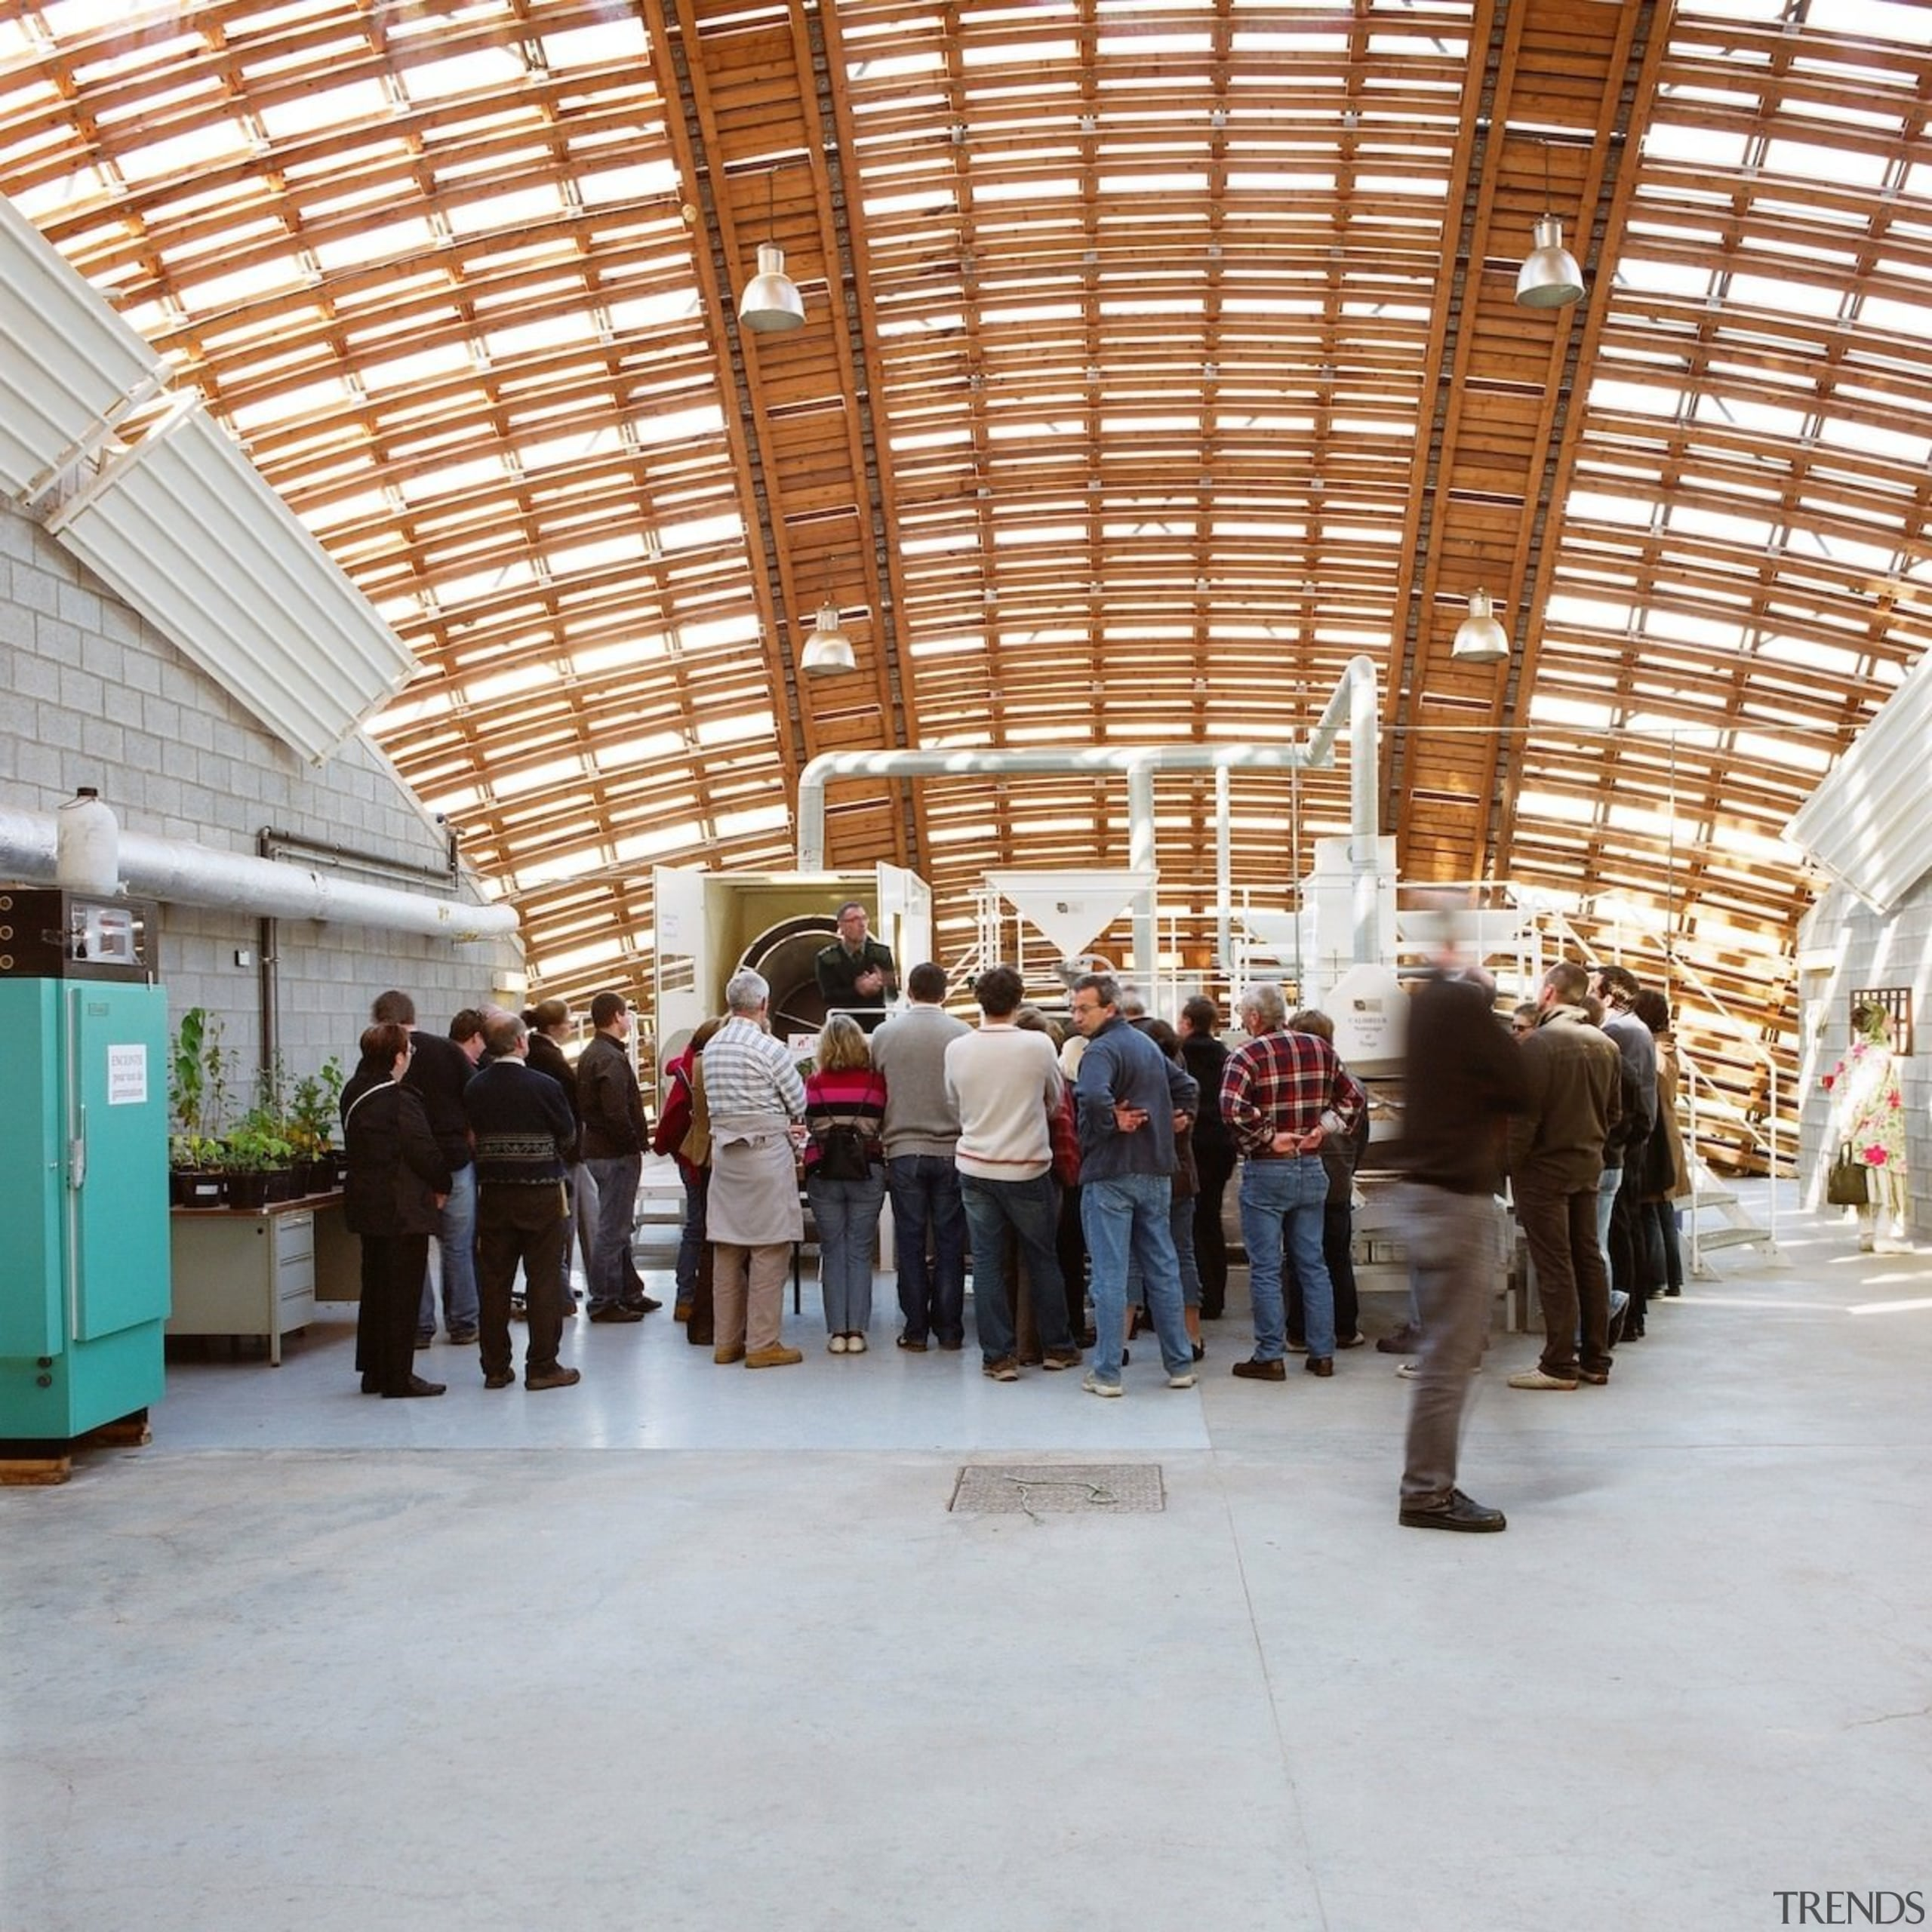 Forestry Branch – Marche-en-Famenne - Forestry Branch – architecture, tourist attraction, gray